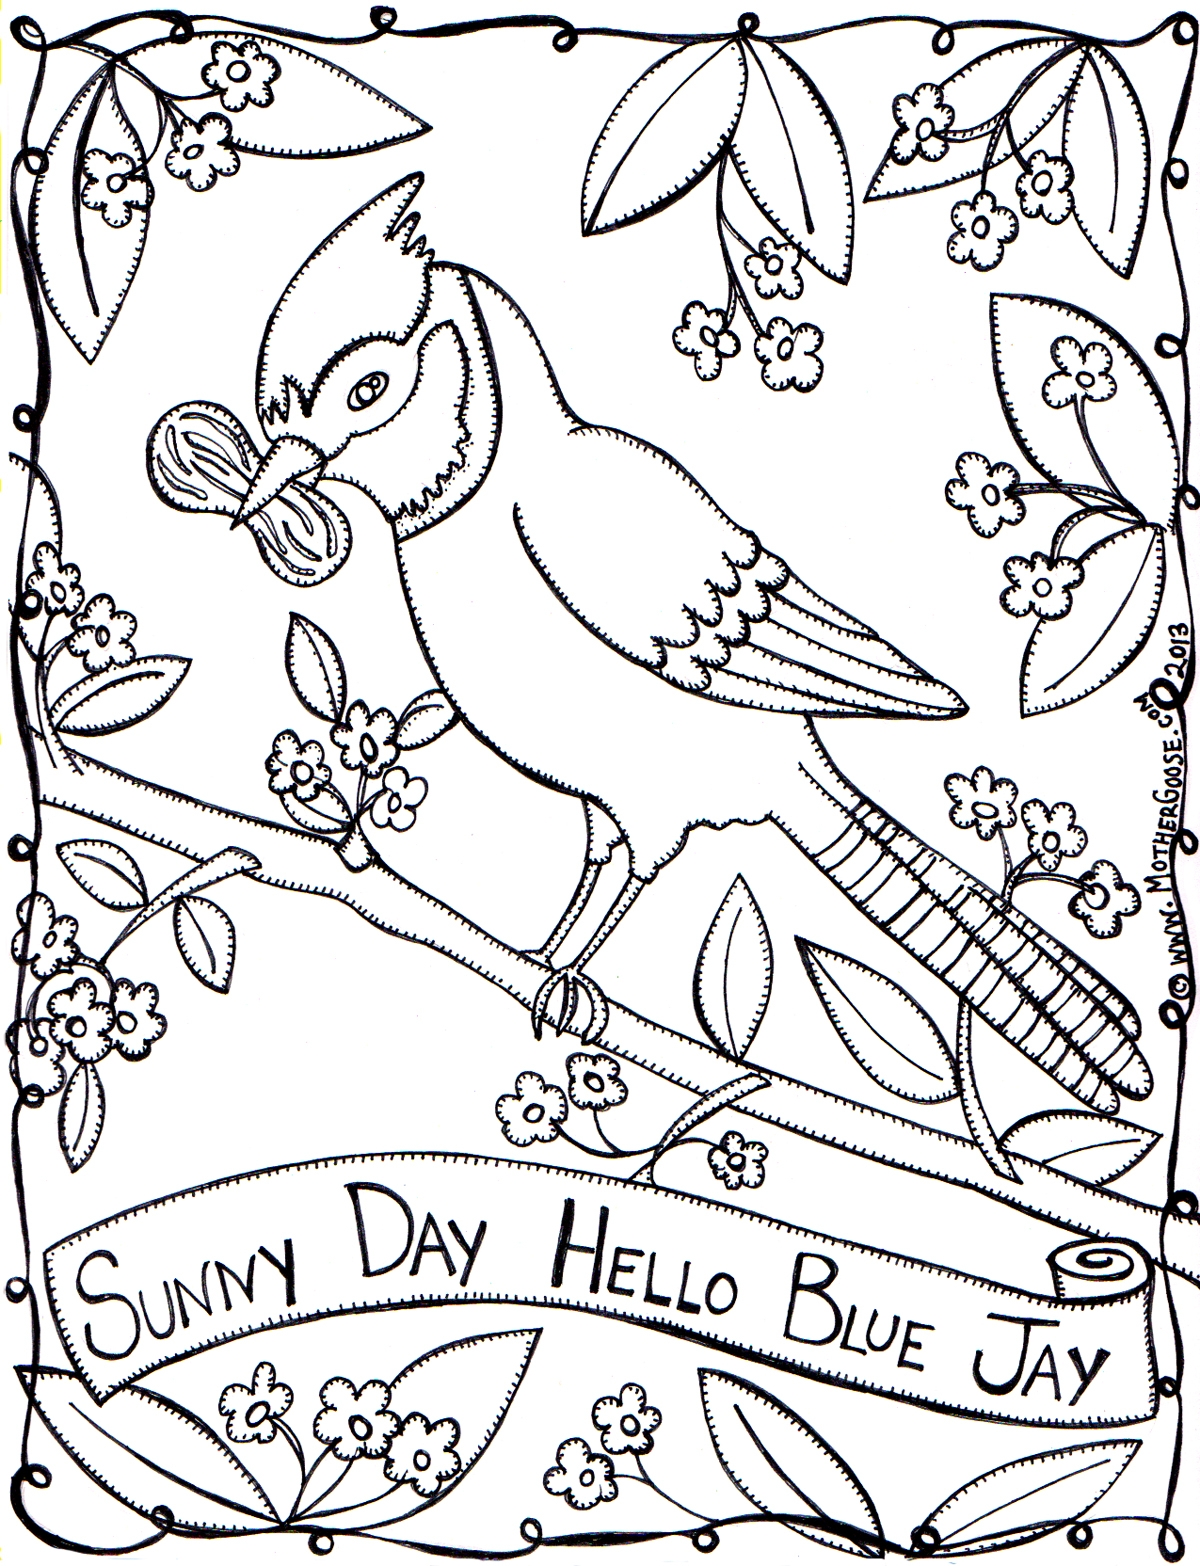 28 Blue Jay Coloring Page Printable | FREE COLORING PAGES - Part 3